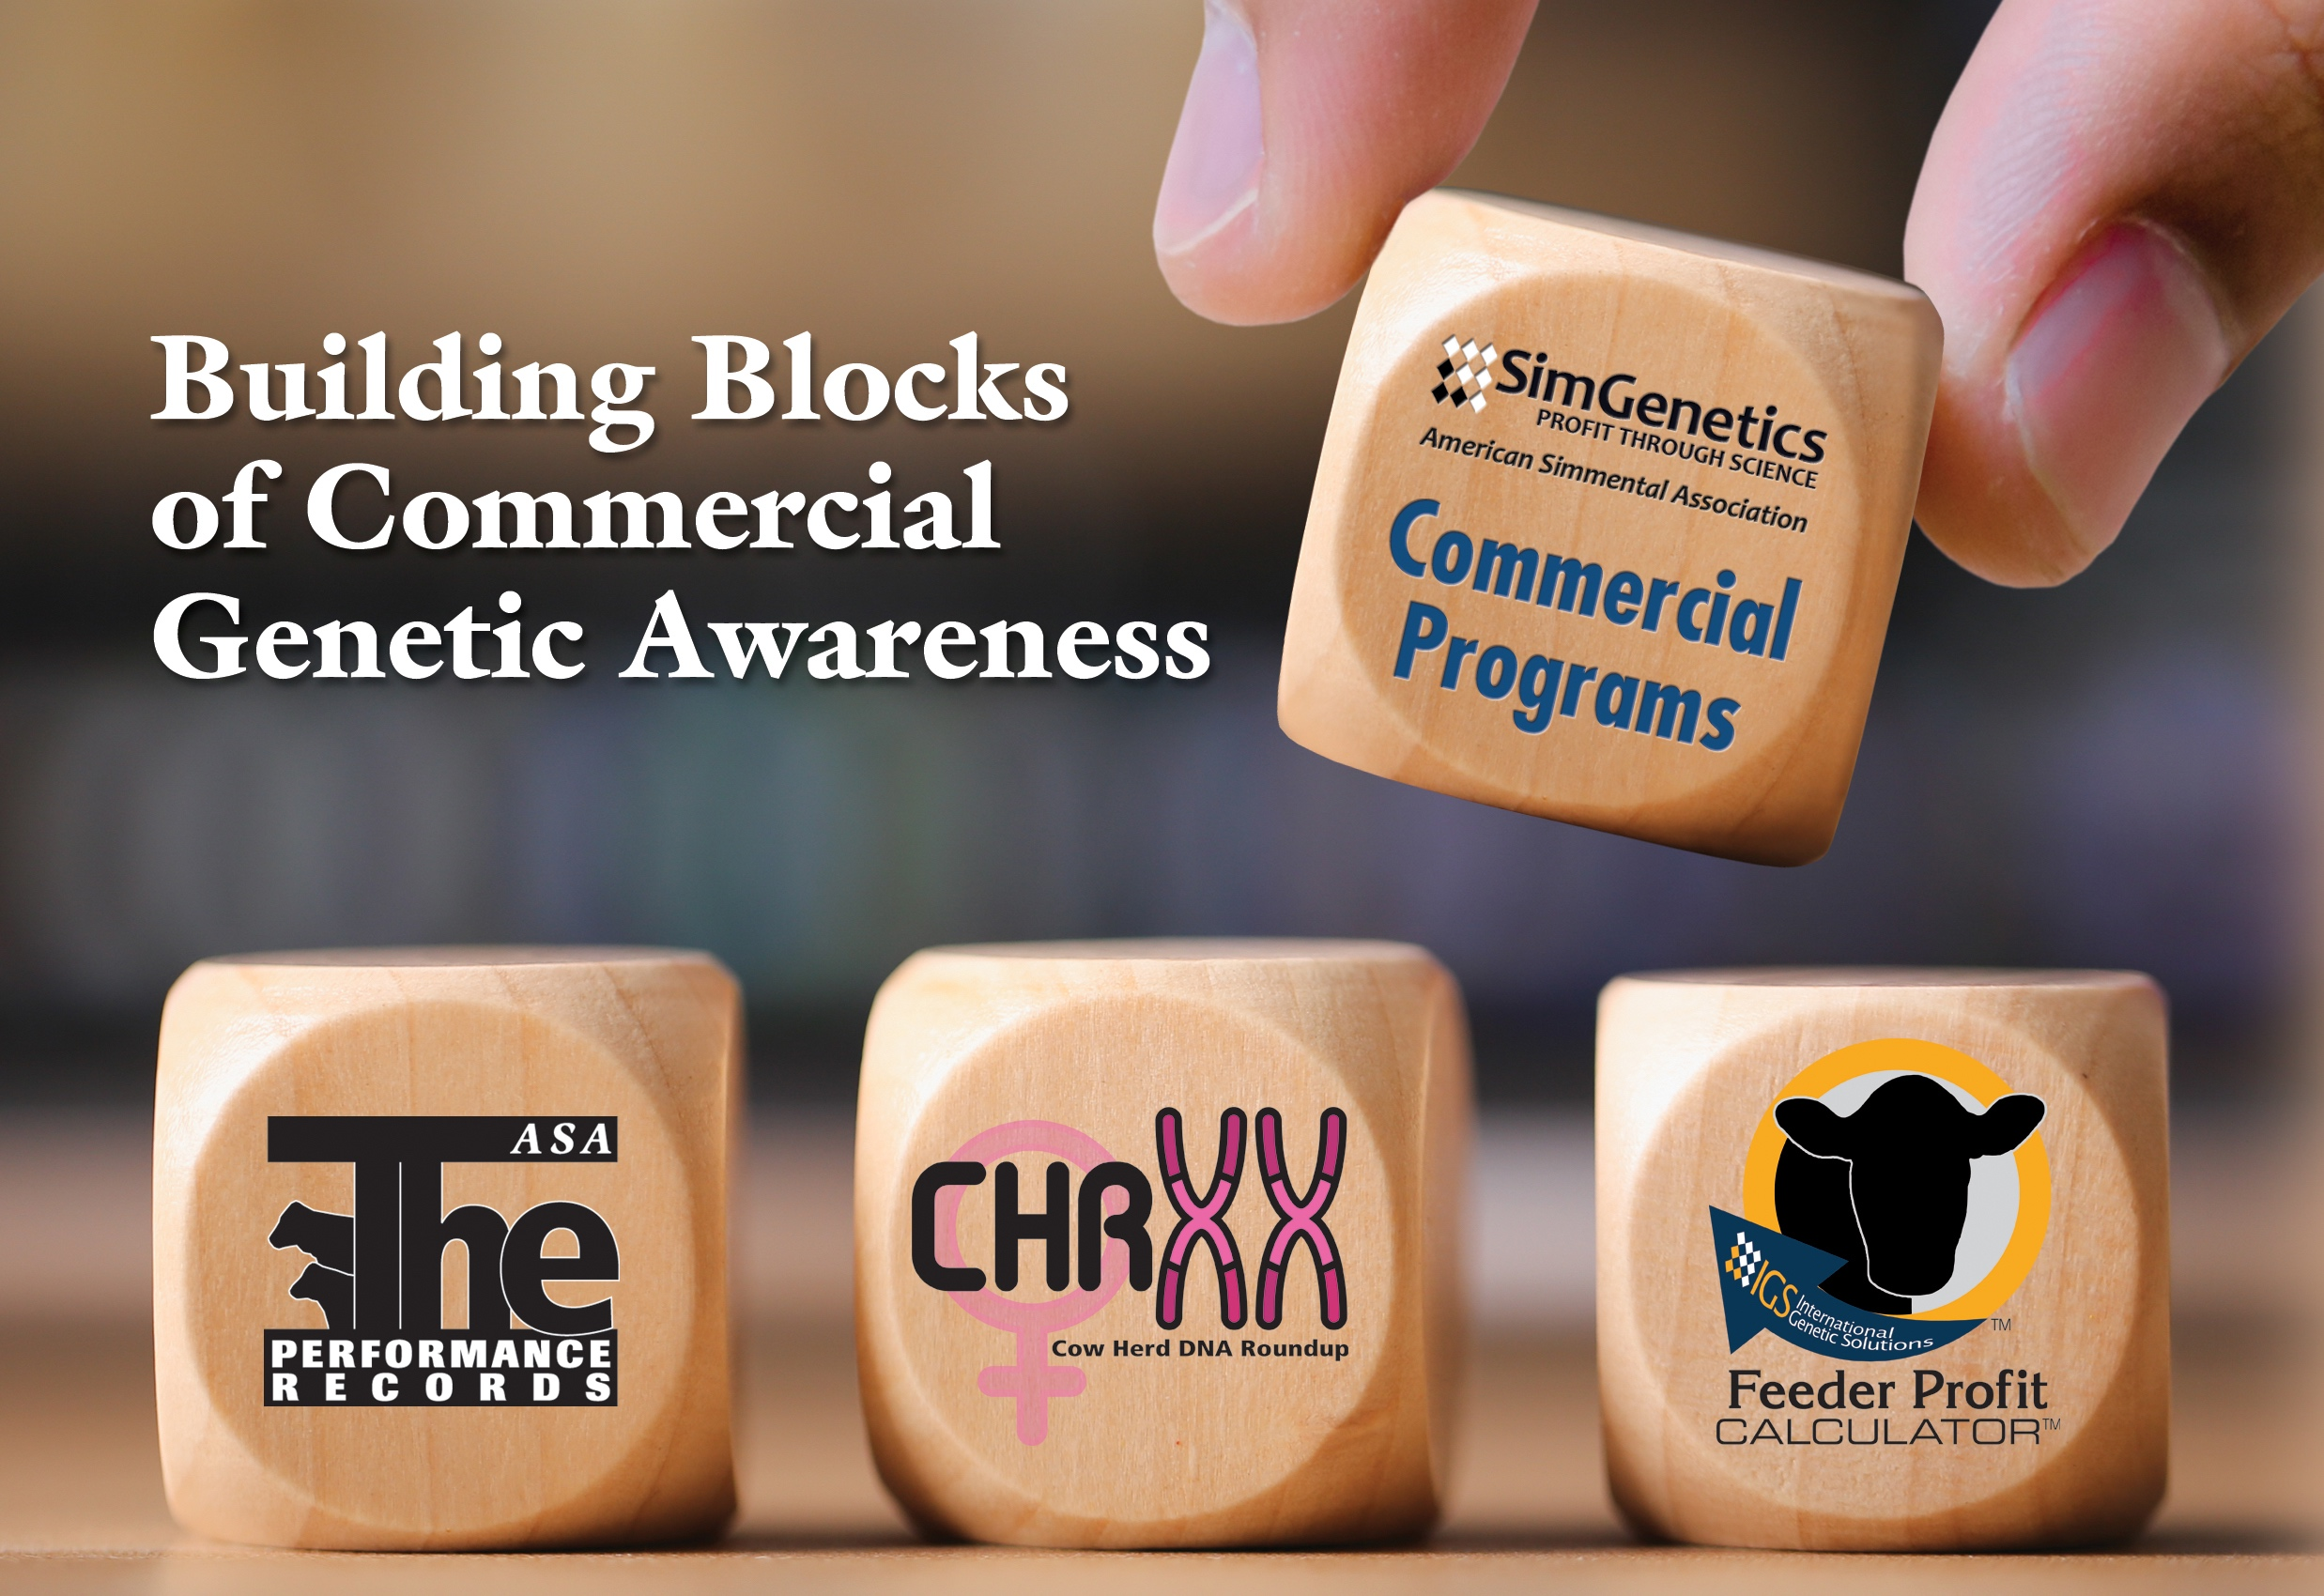 Building Blocks of Commercial Genetic Awareness